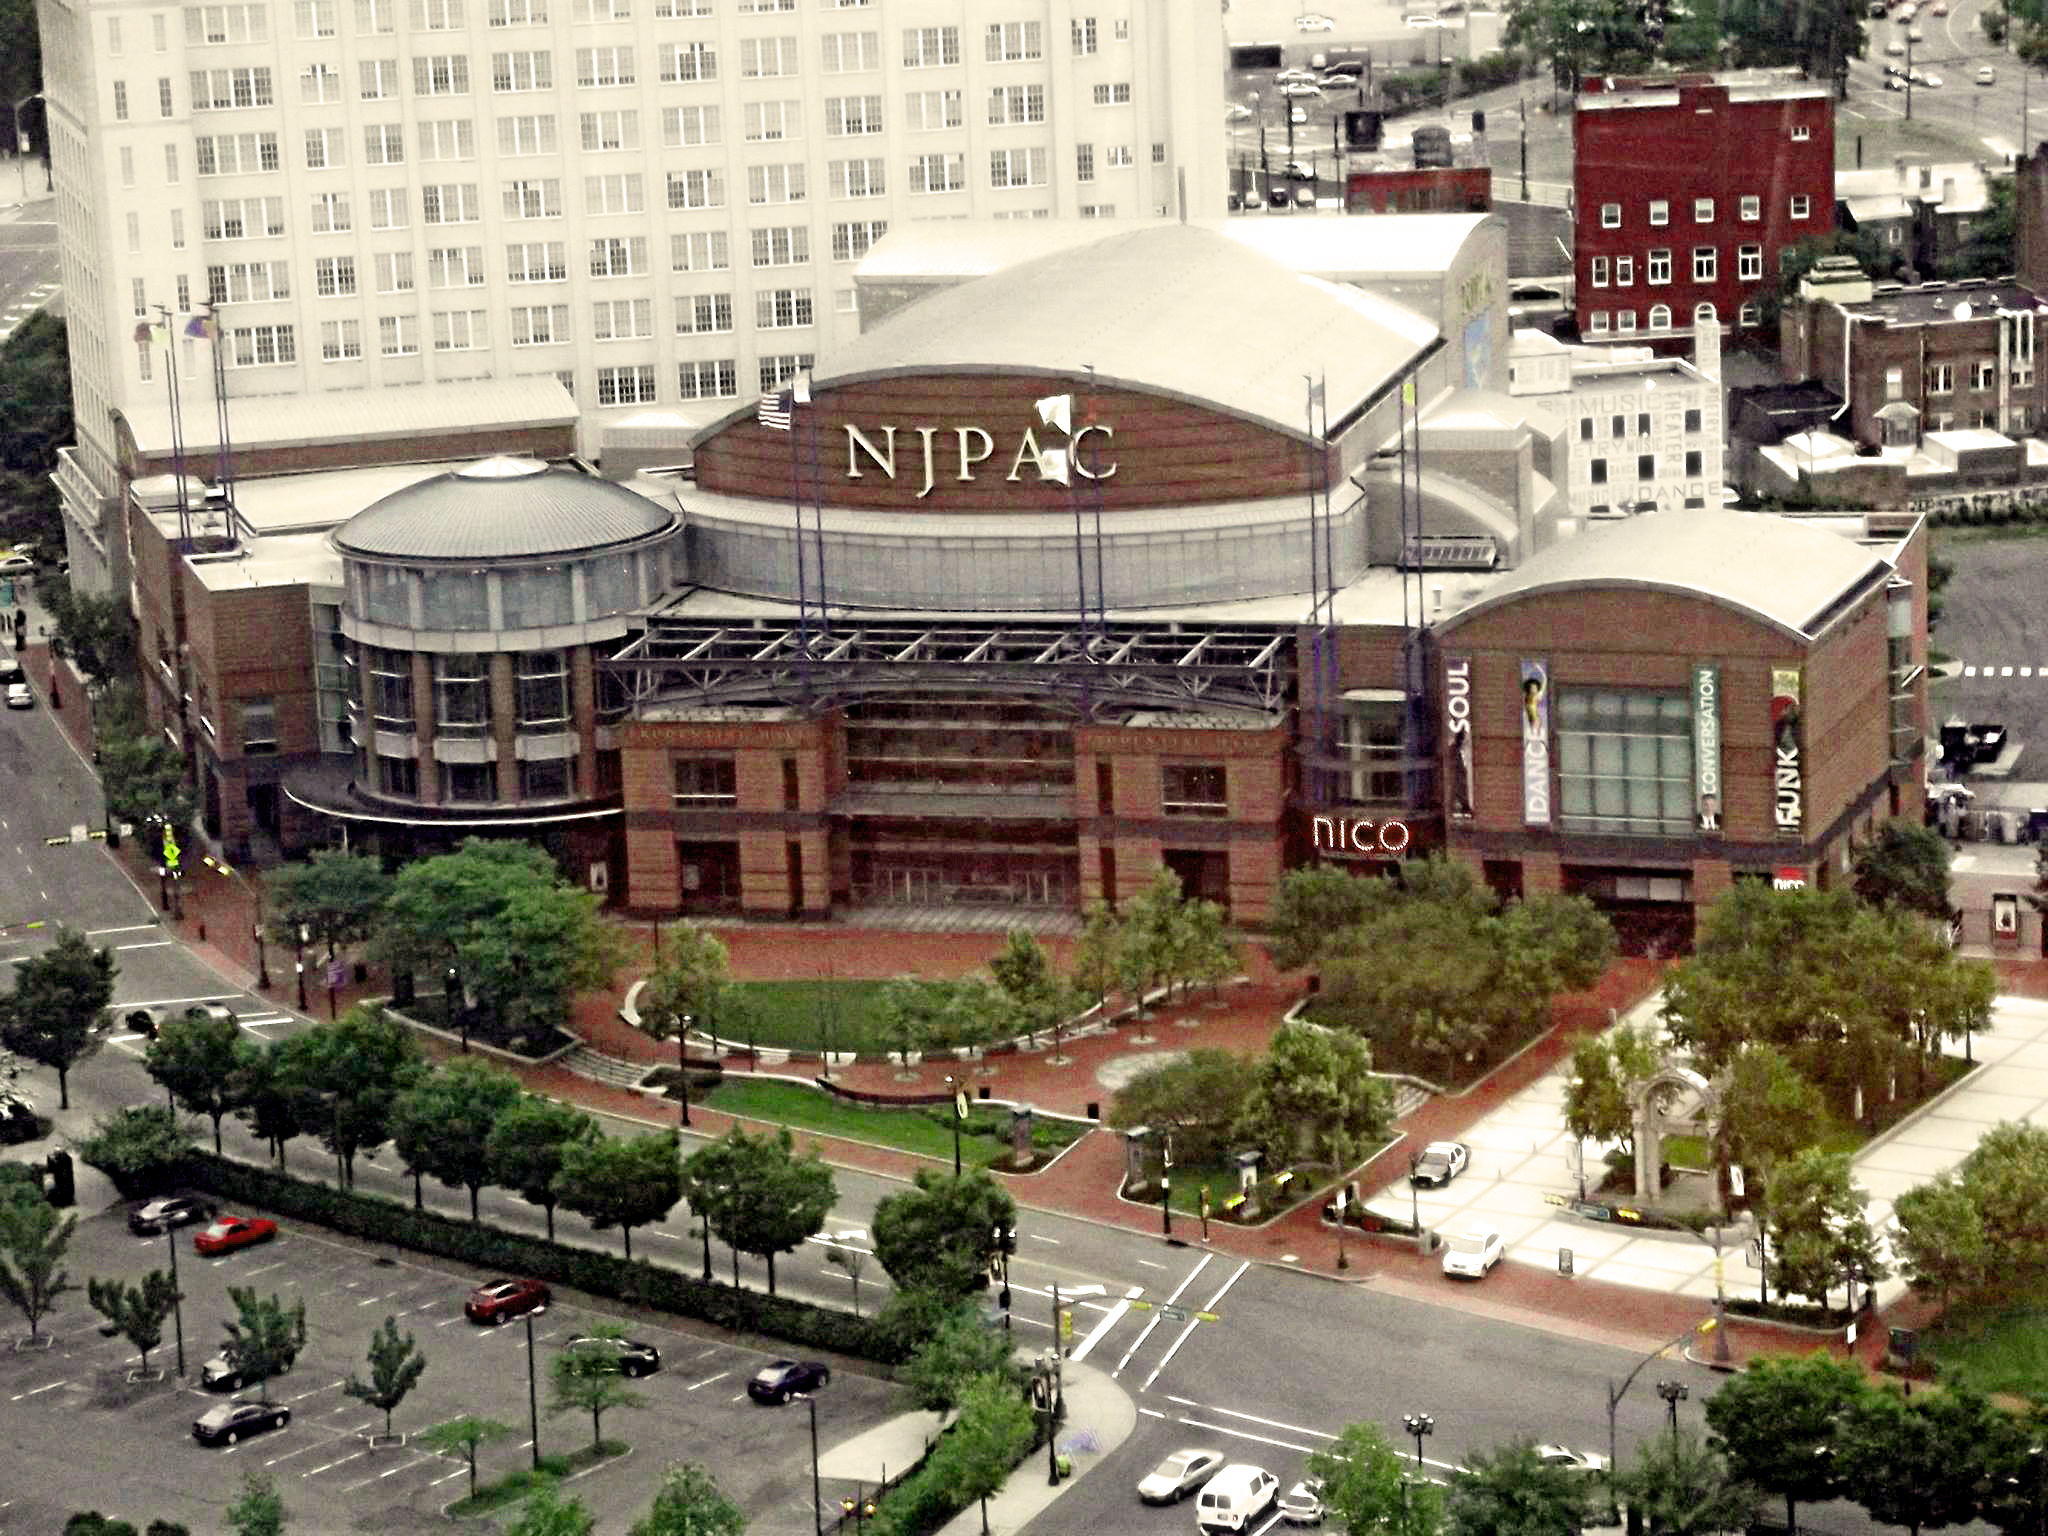 NJPAC from Above Summer 2013